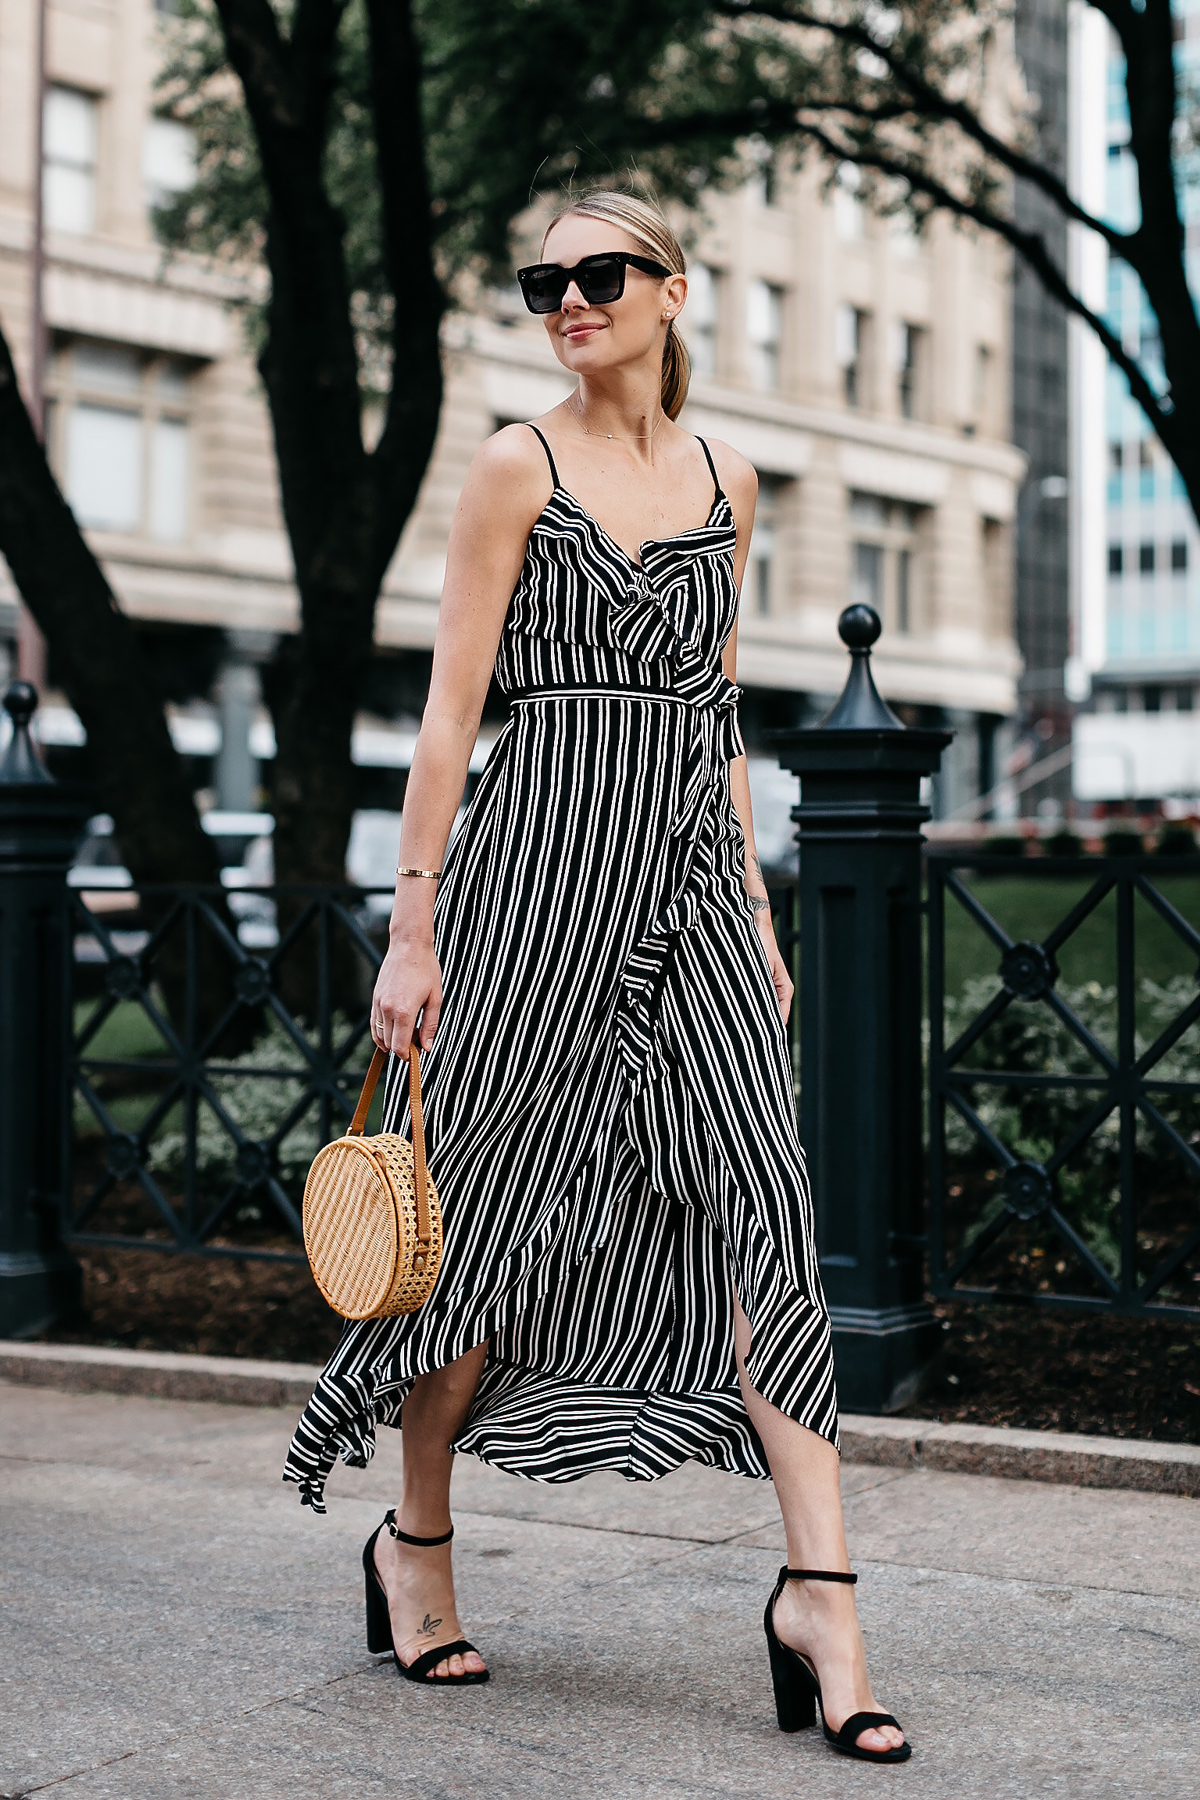 Blonde Woman Wearing AQUA Black White Stripe Maxi Dress Circle Straw Basket Handbag Black Ankle Strap Heeled Sandals Fashion Jackson Dallas Blogger Fashion Blogger Street Style